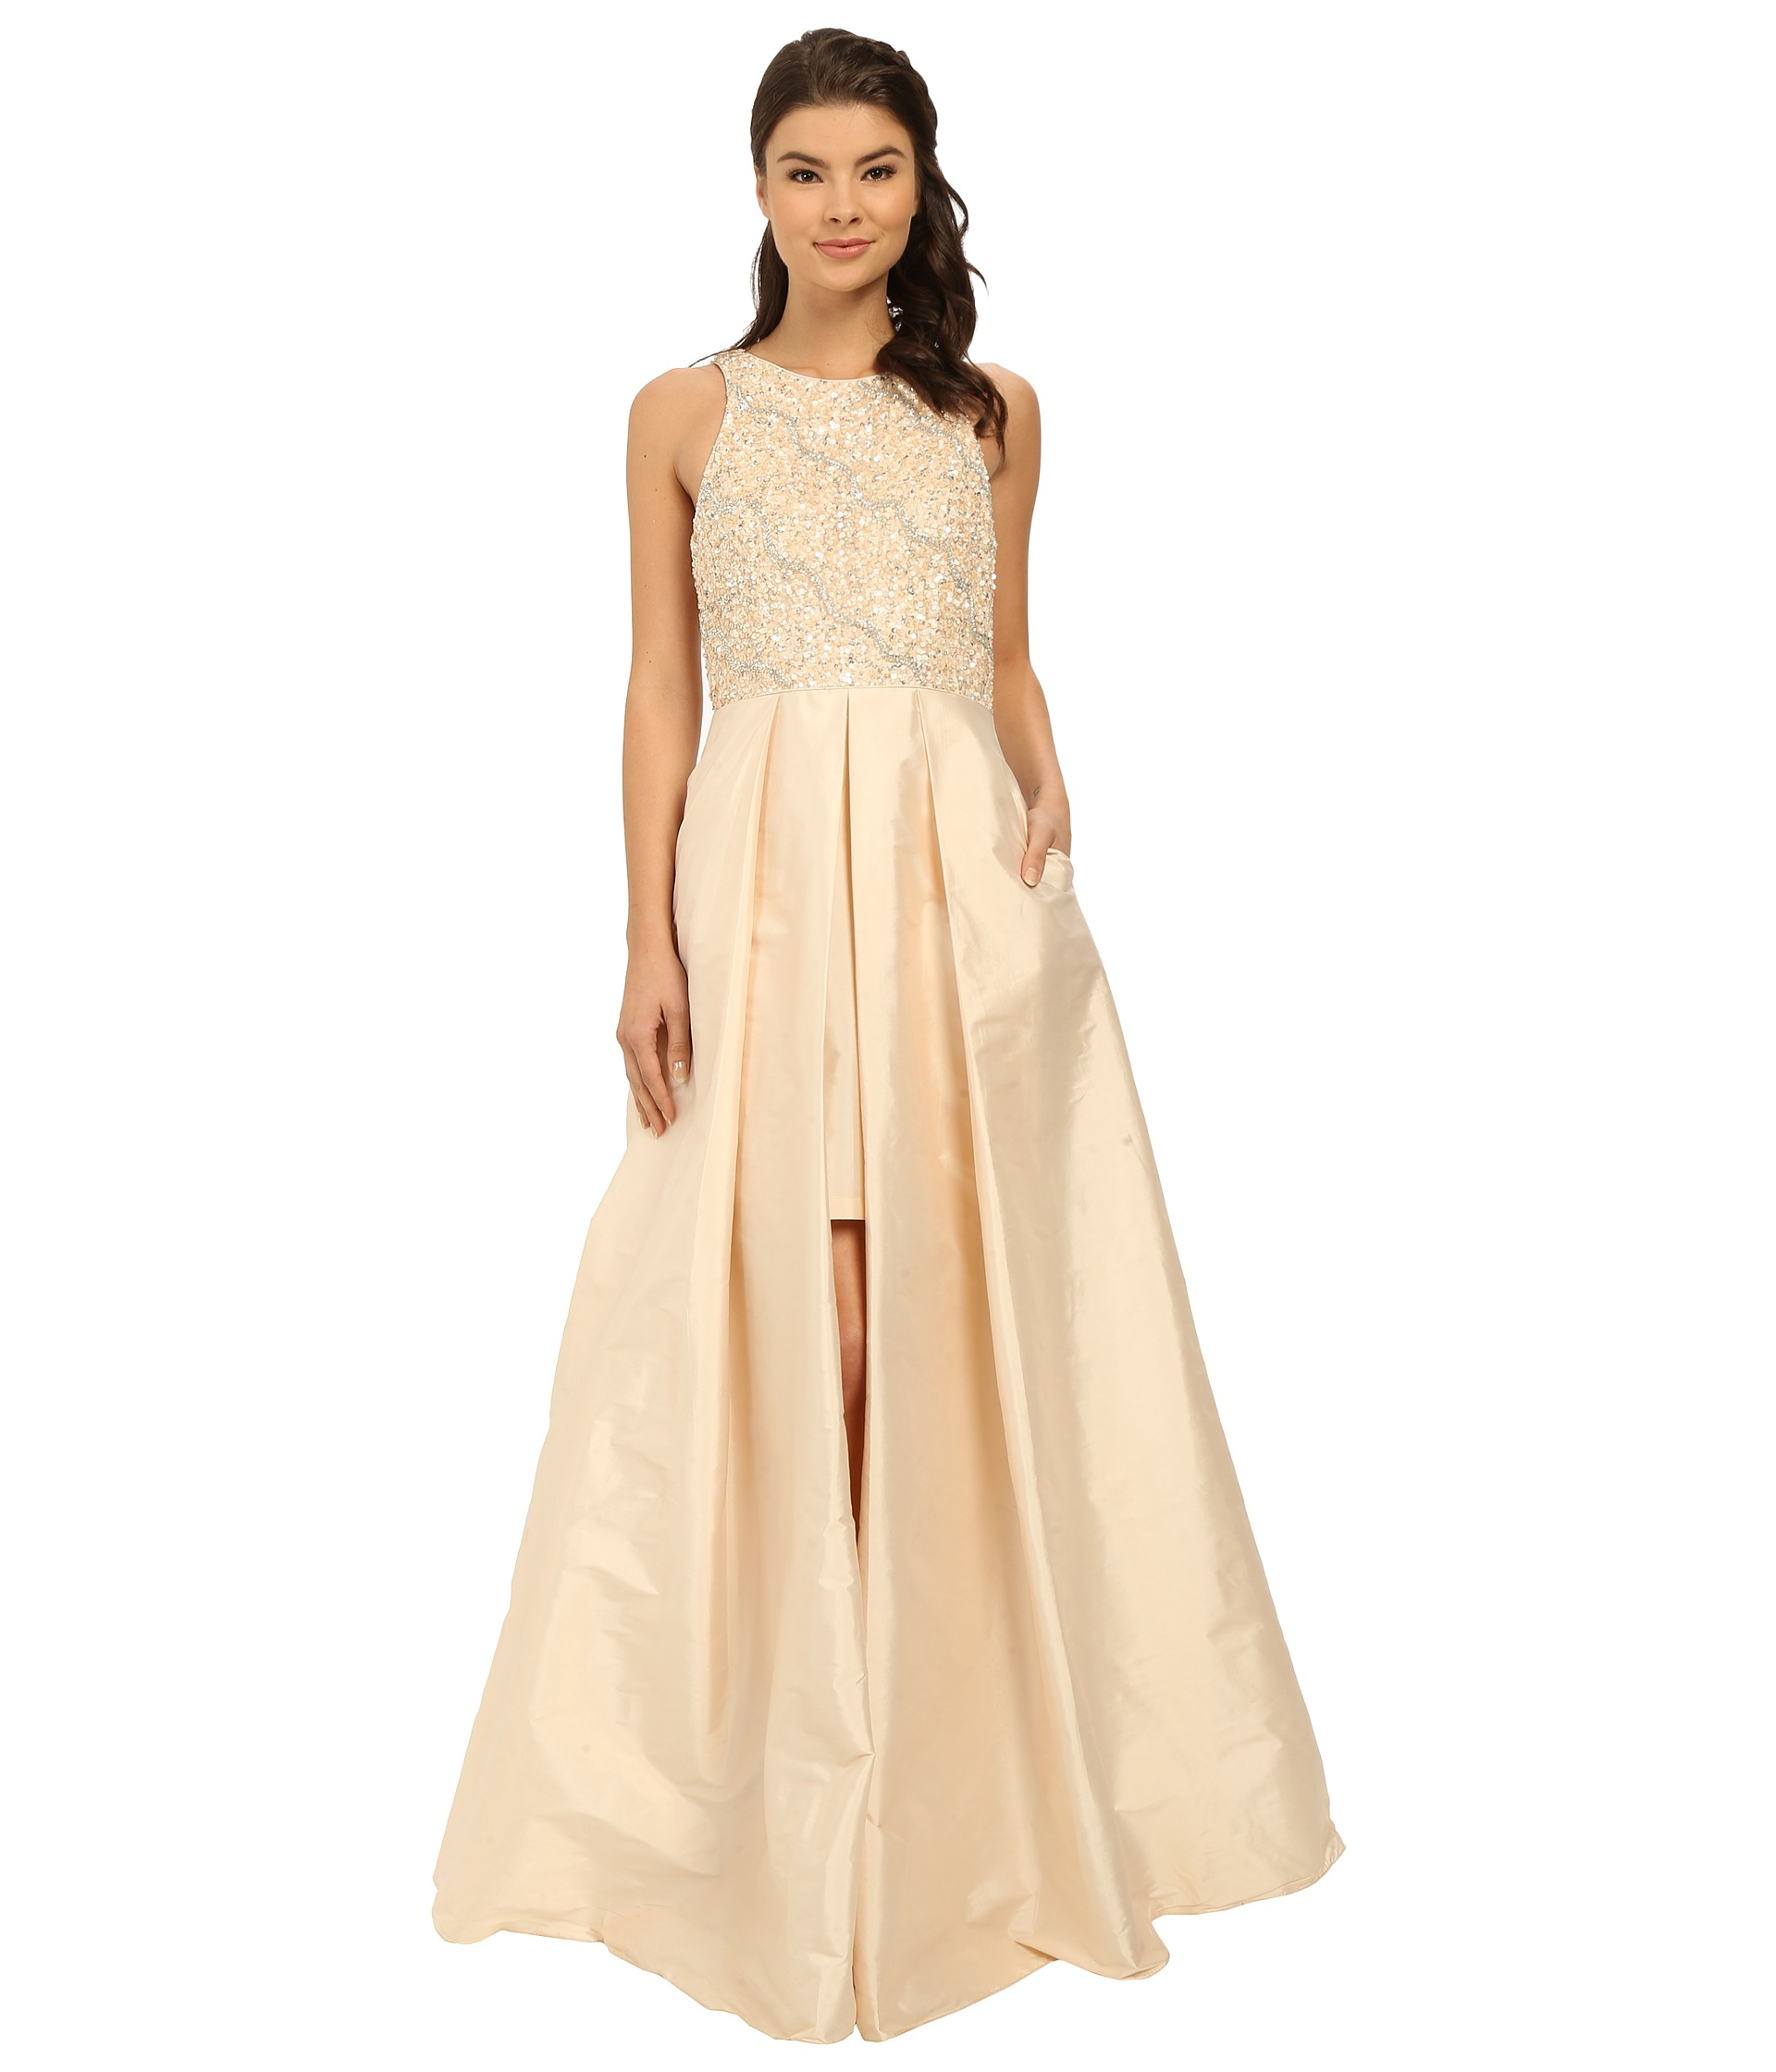 36bffcc1425c66 Adrianna Papell Halter With Taffeta Skirt Gown in Natural - Lyst